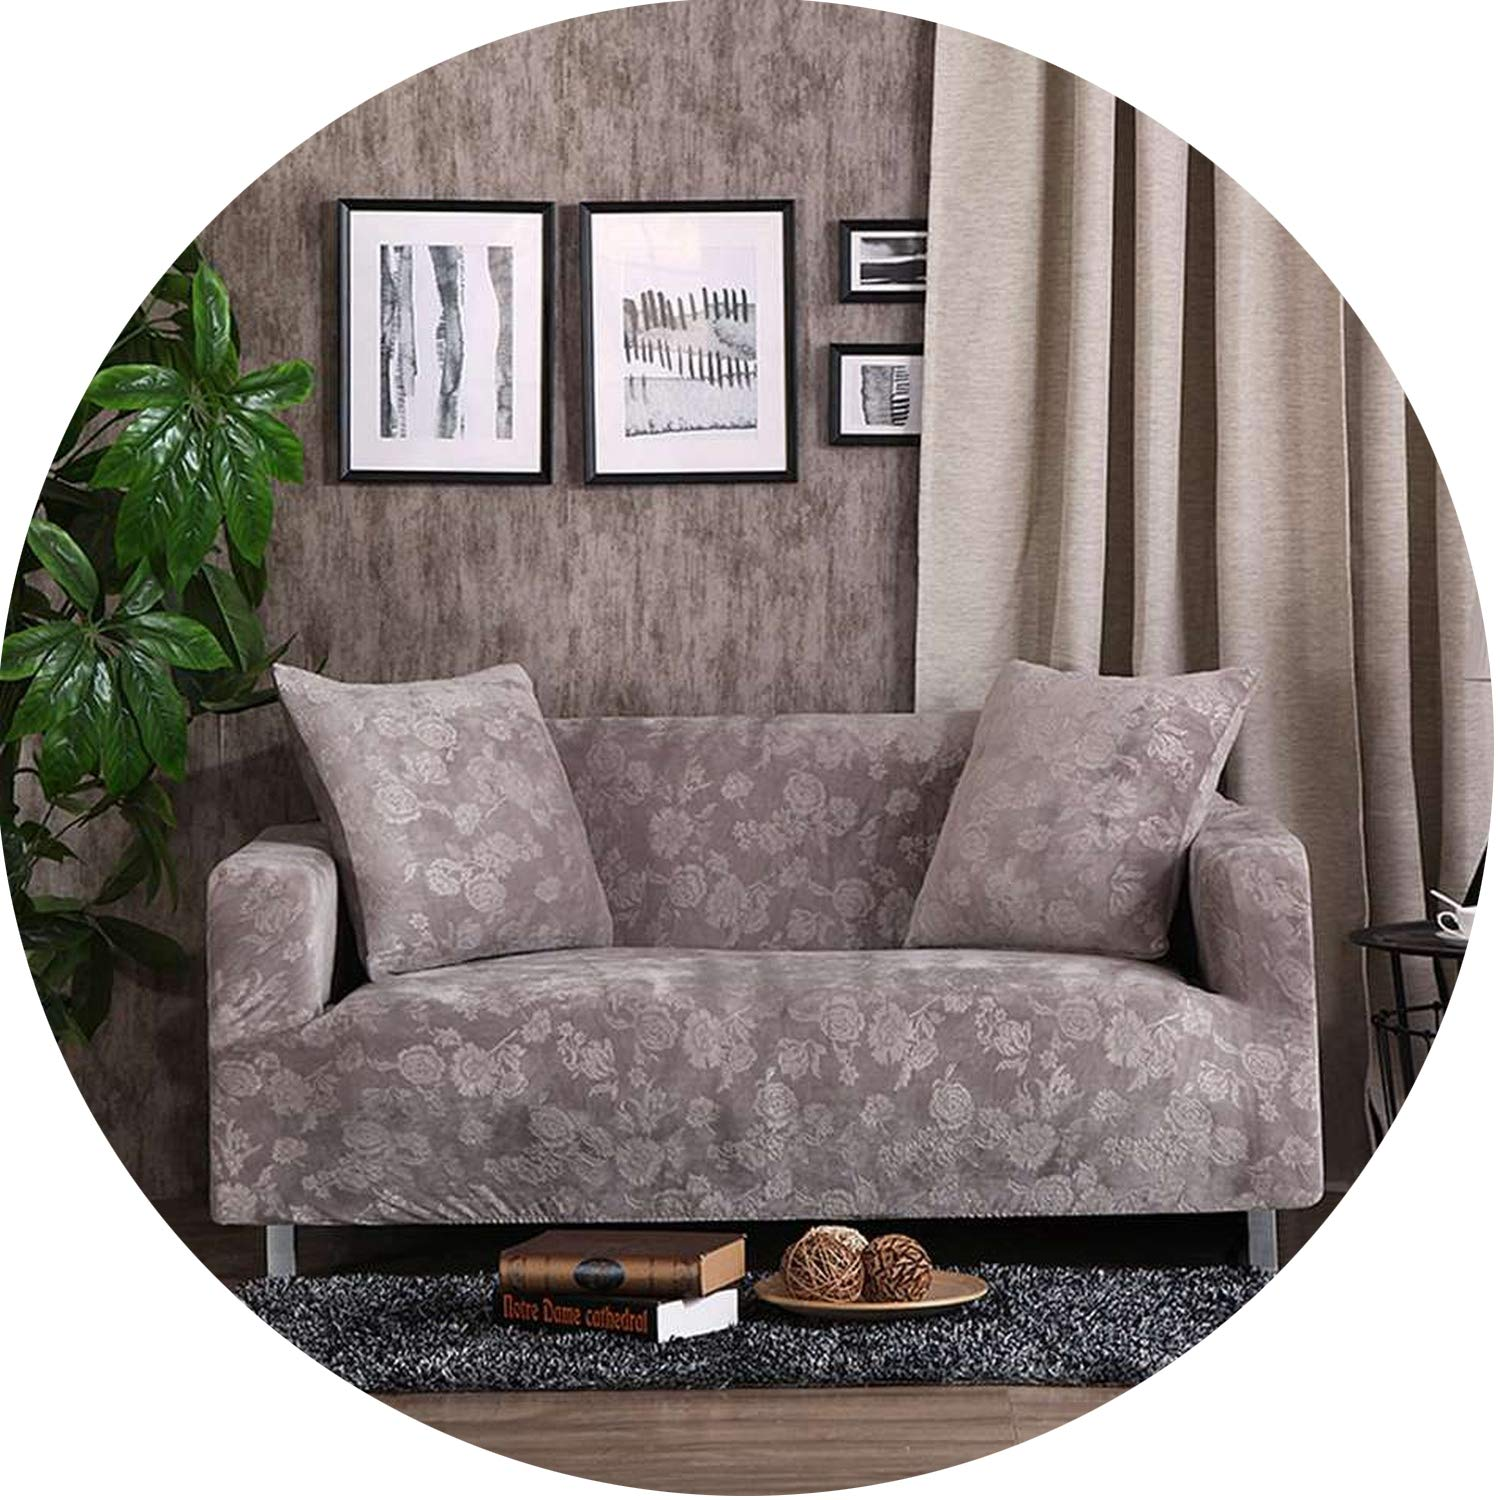 Sofa Cover for Living Room Sofa Cover Solid Color Anti-Dirty Slipcovers,010,Four Seat Cover